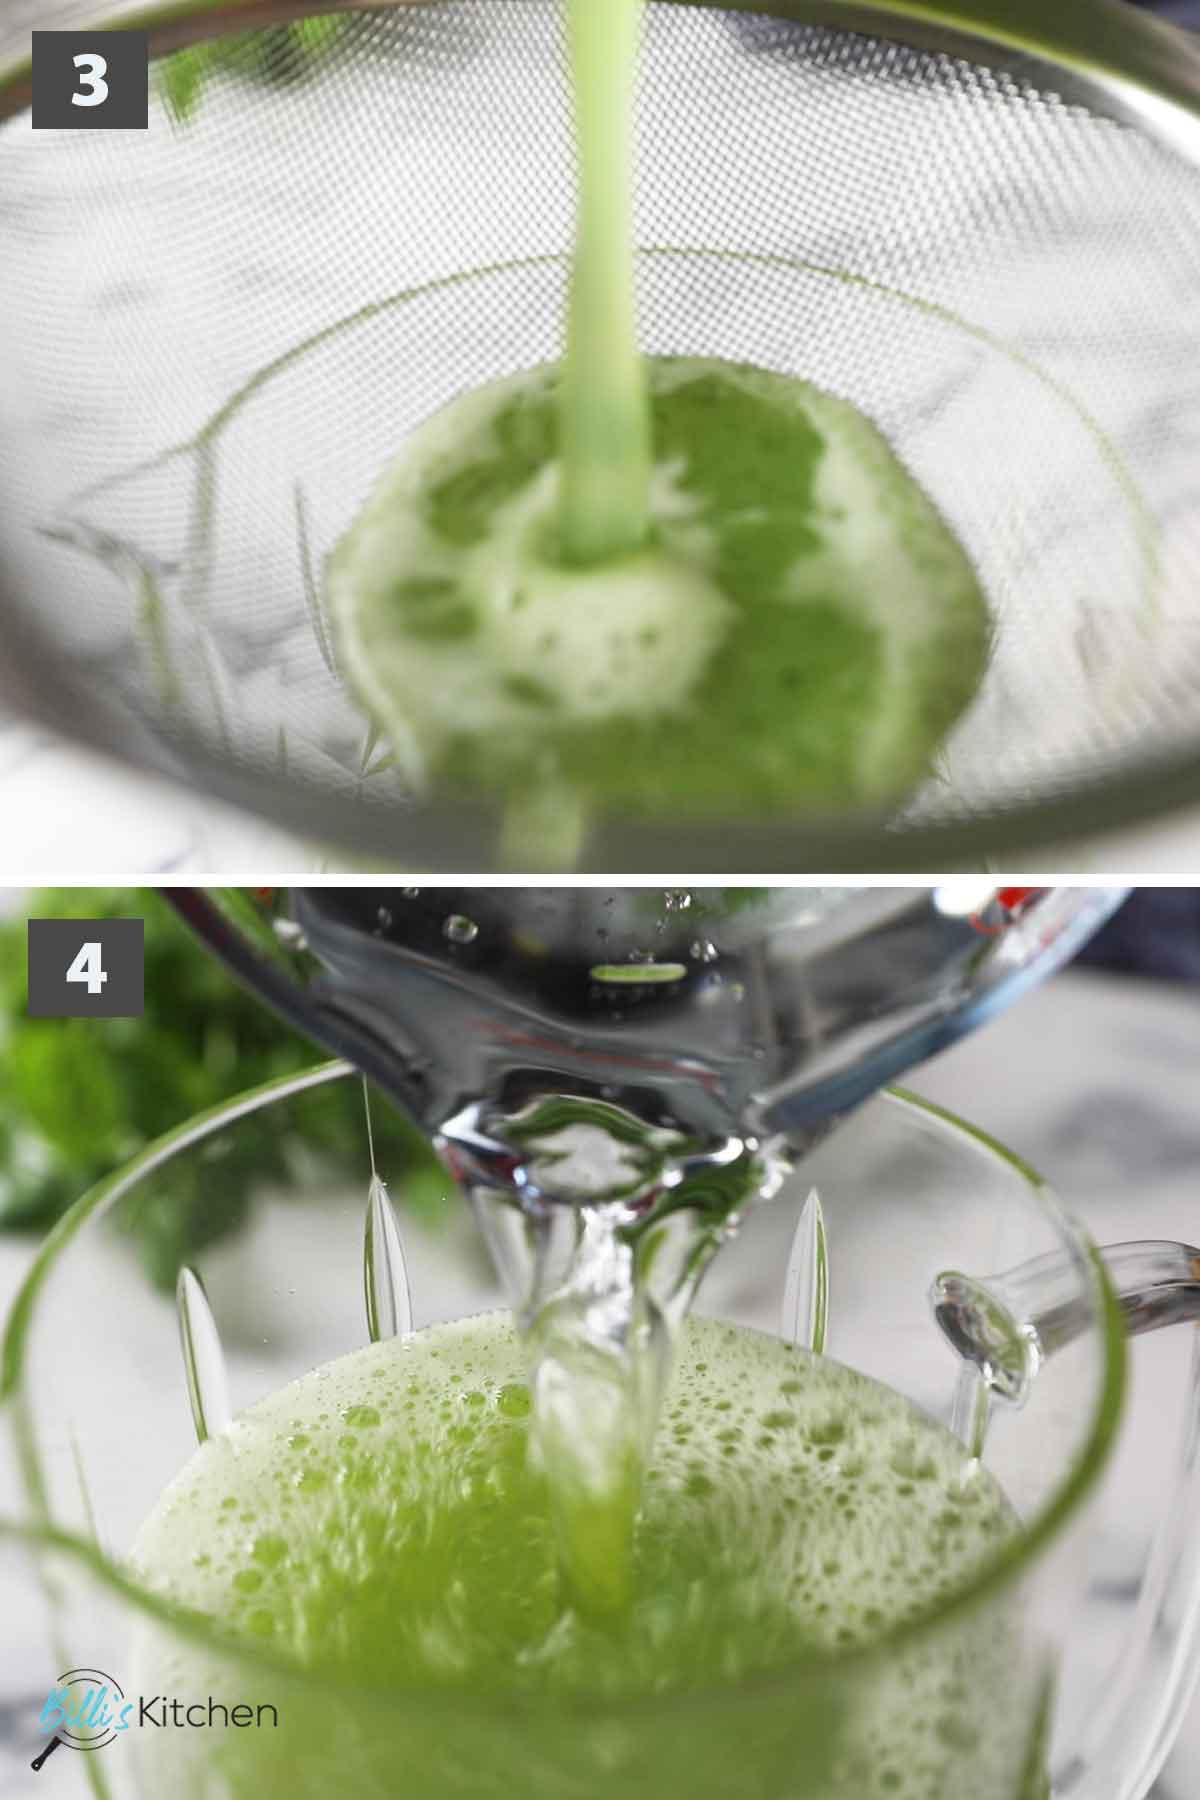 Update second part of a collage of images showing the step by step process on how to make cucumber mint lemonade at home.